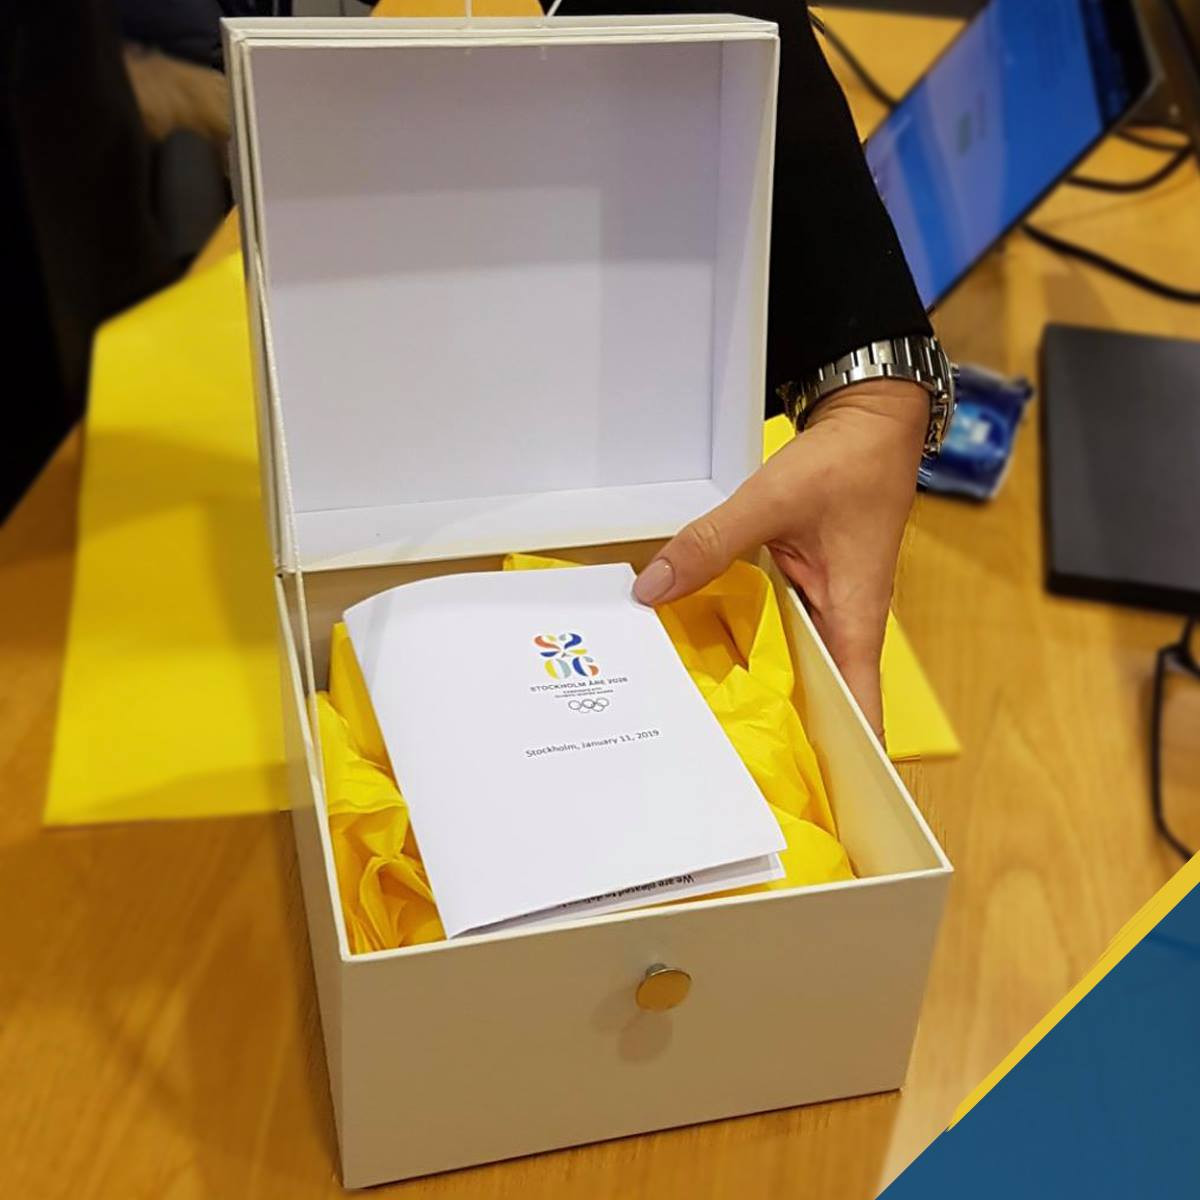 Sweden's bid for the 2026 Winter Olympics and Paralympic Games is now a joint candidacy with  Åre ©SOK